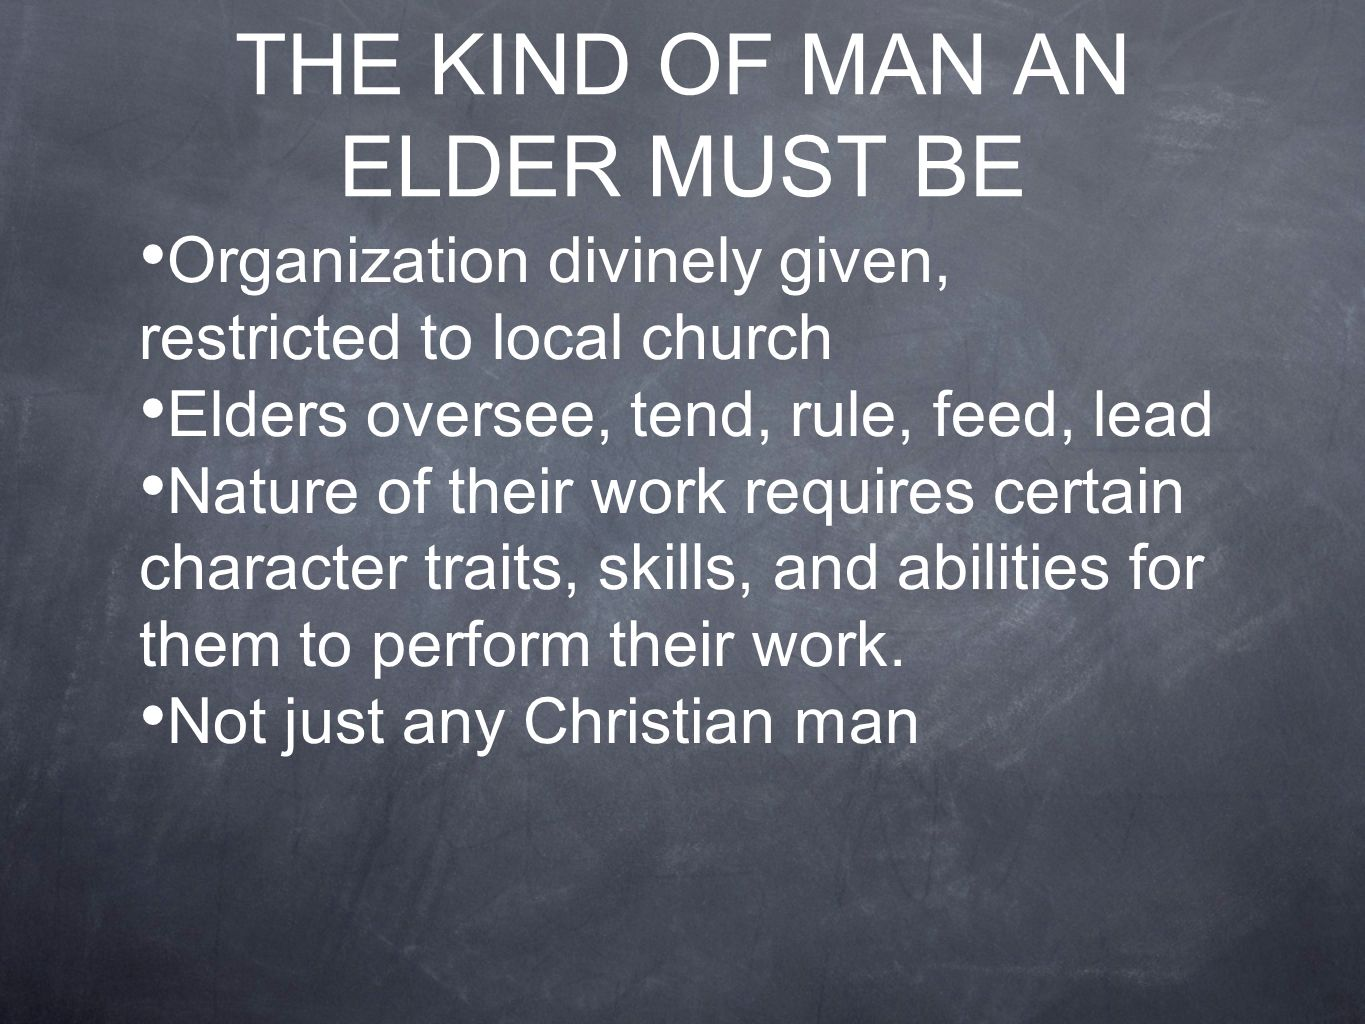 THE KIND OF MAN AN ELDER MUST BE Organization divinely given, restricted to local church Elders oversee, tend, rule, feed, lead Nature of their work requires certain character traits, skills, and abilities for them to perform their work.